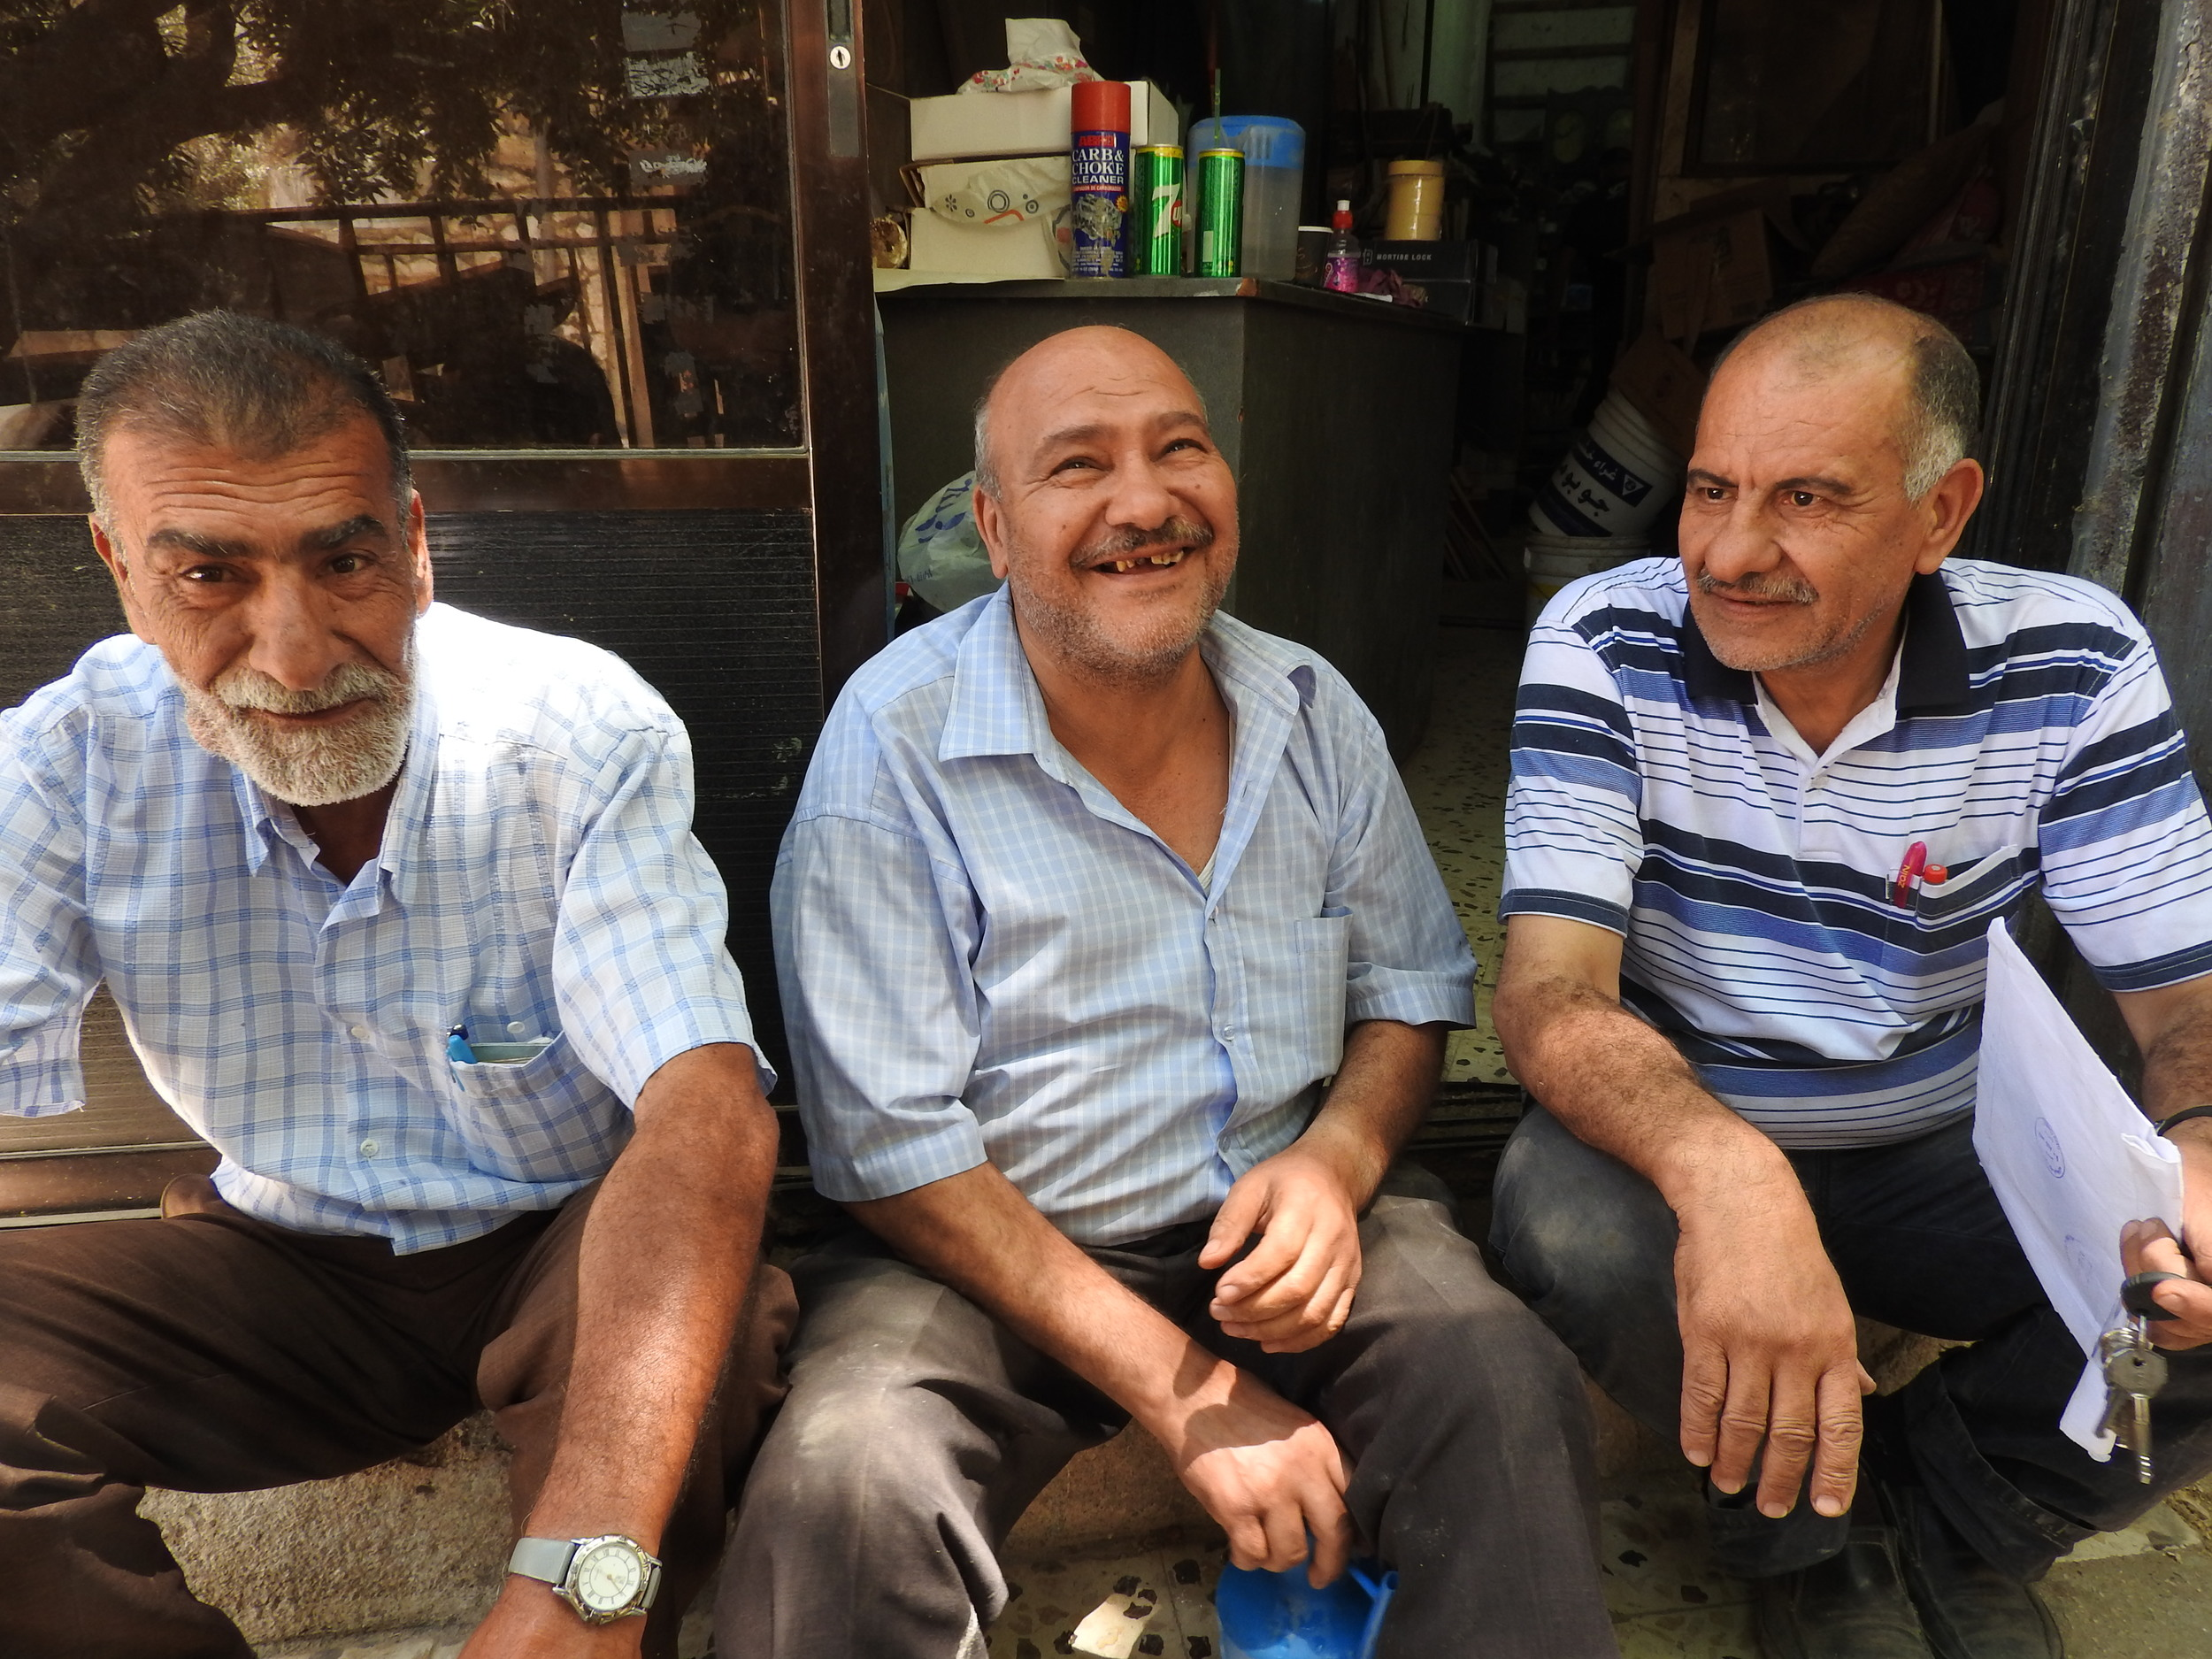 Palestinian brothers Saleme Ata Ahmed Idris, Ziyad Adrees and Taisier Ata Mohammad Idries. Photograph by Andrew Dodd